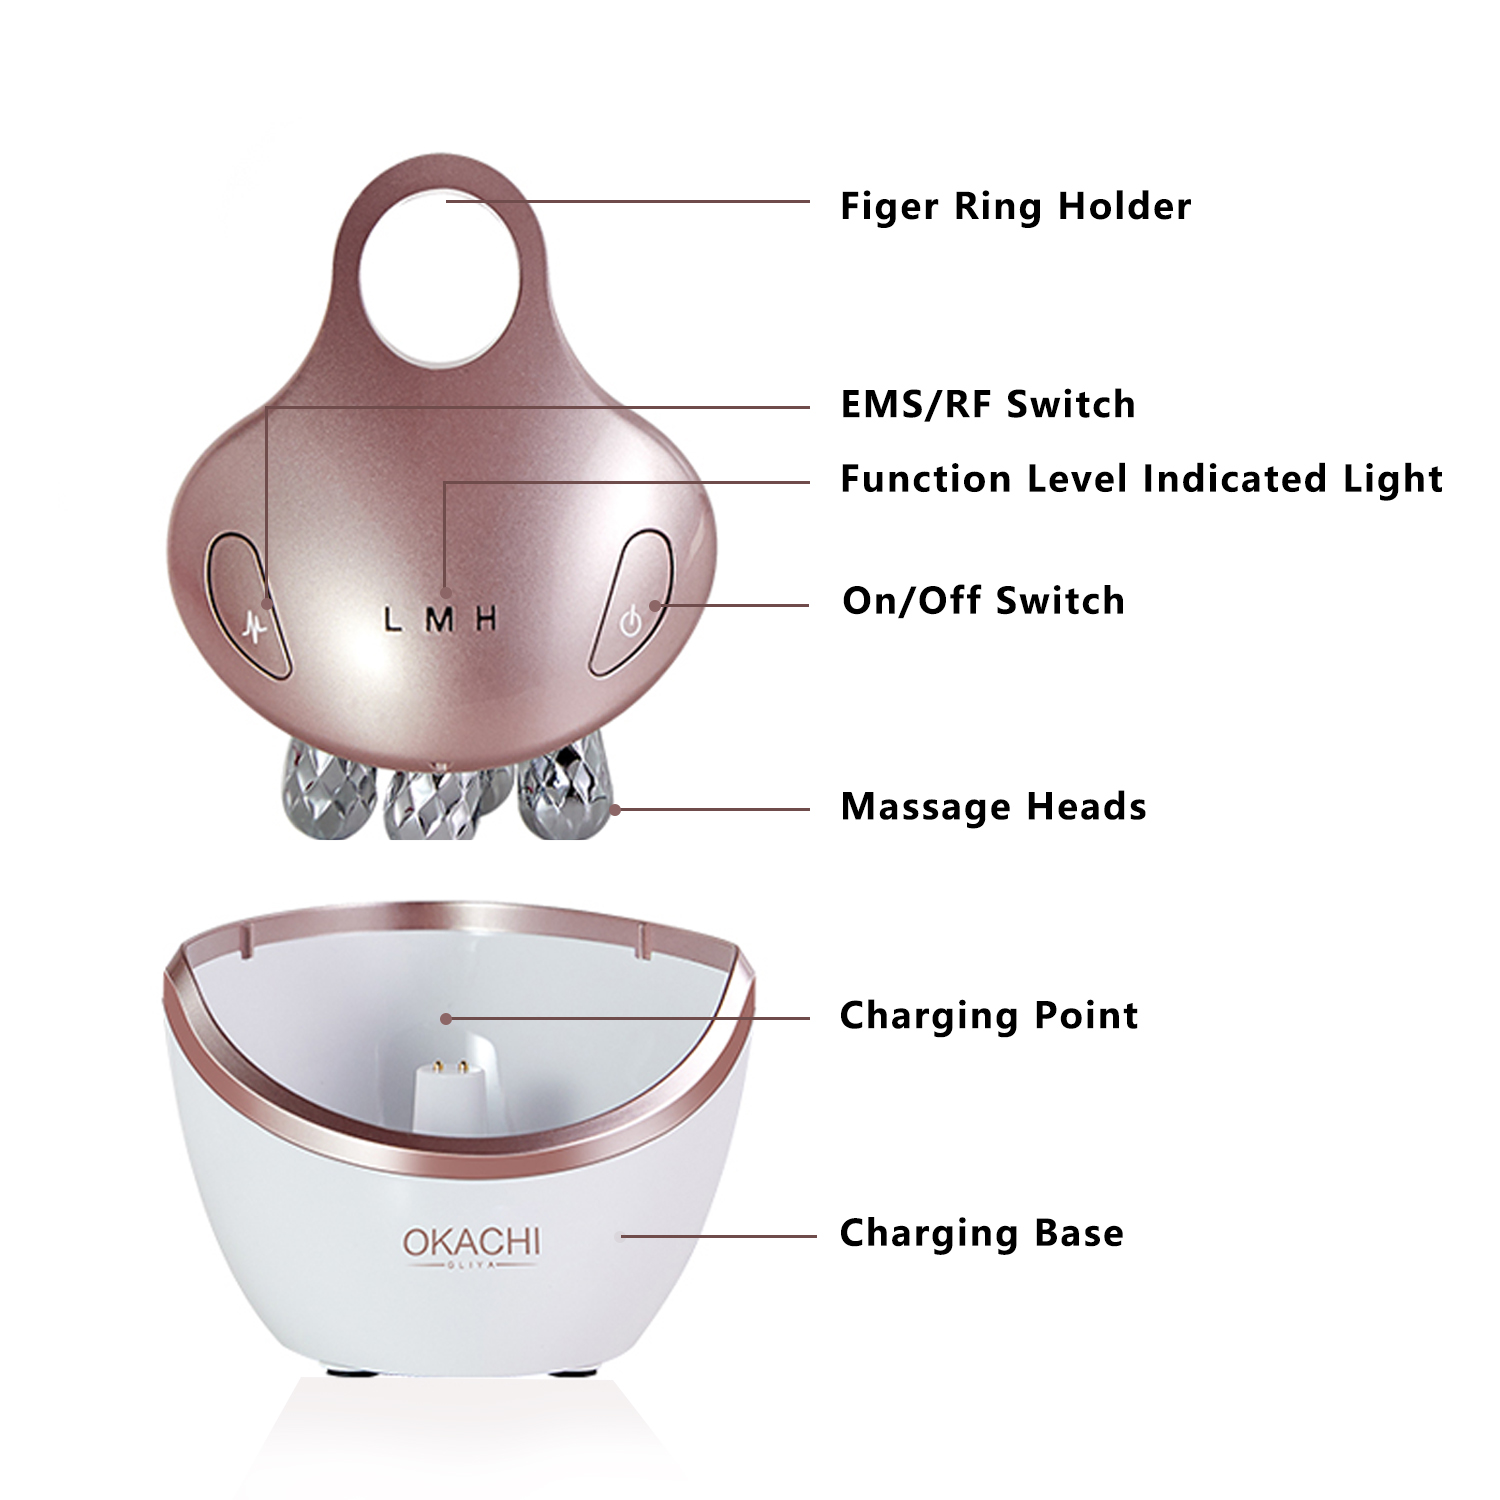 3. detail of the facial massager